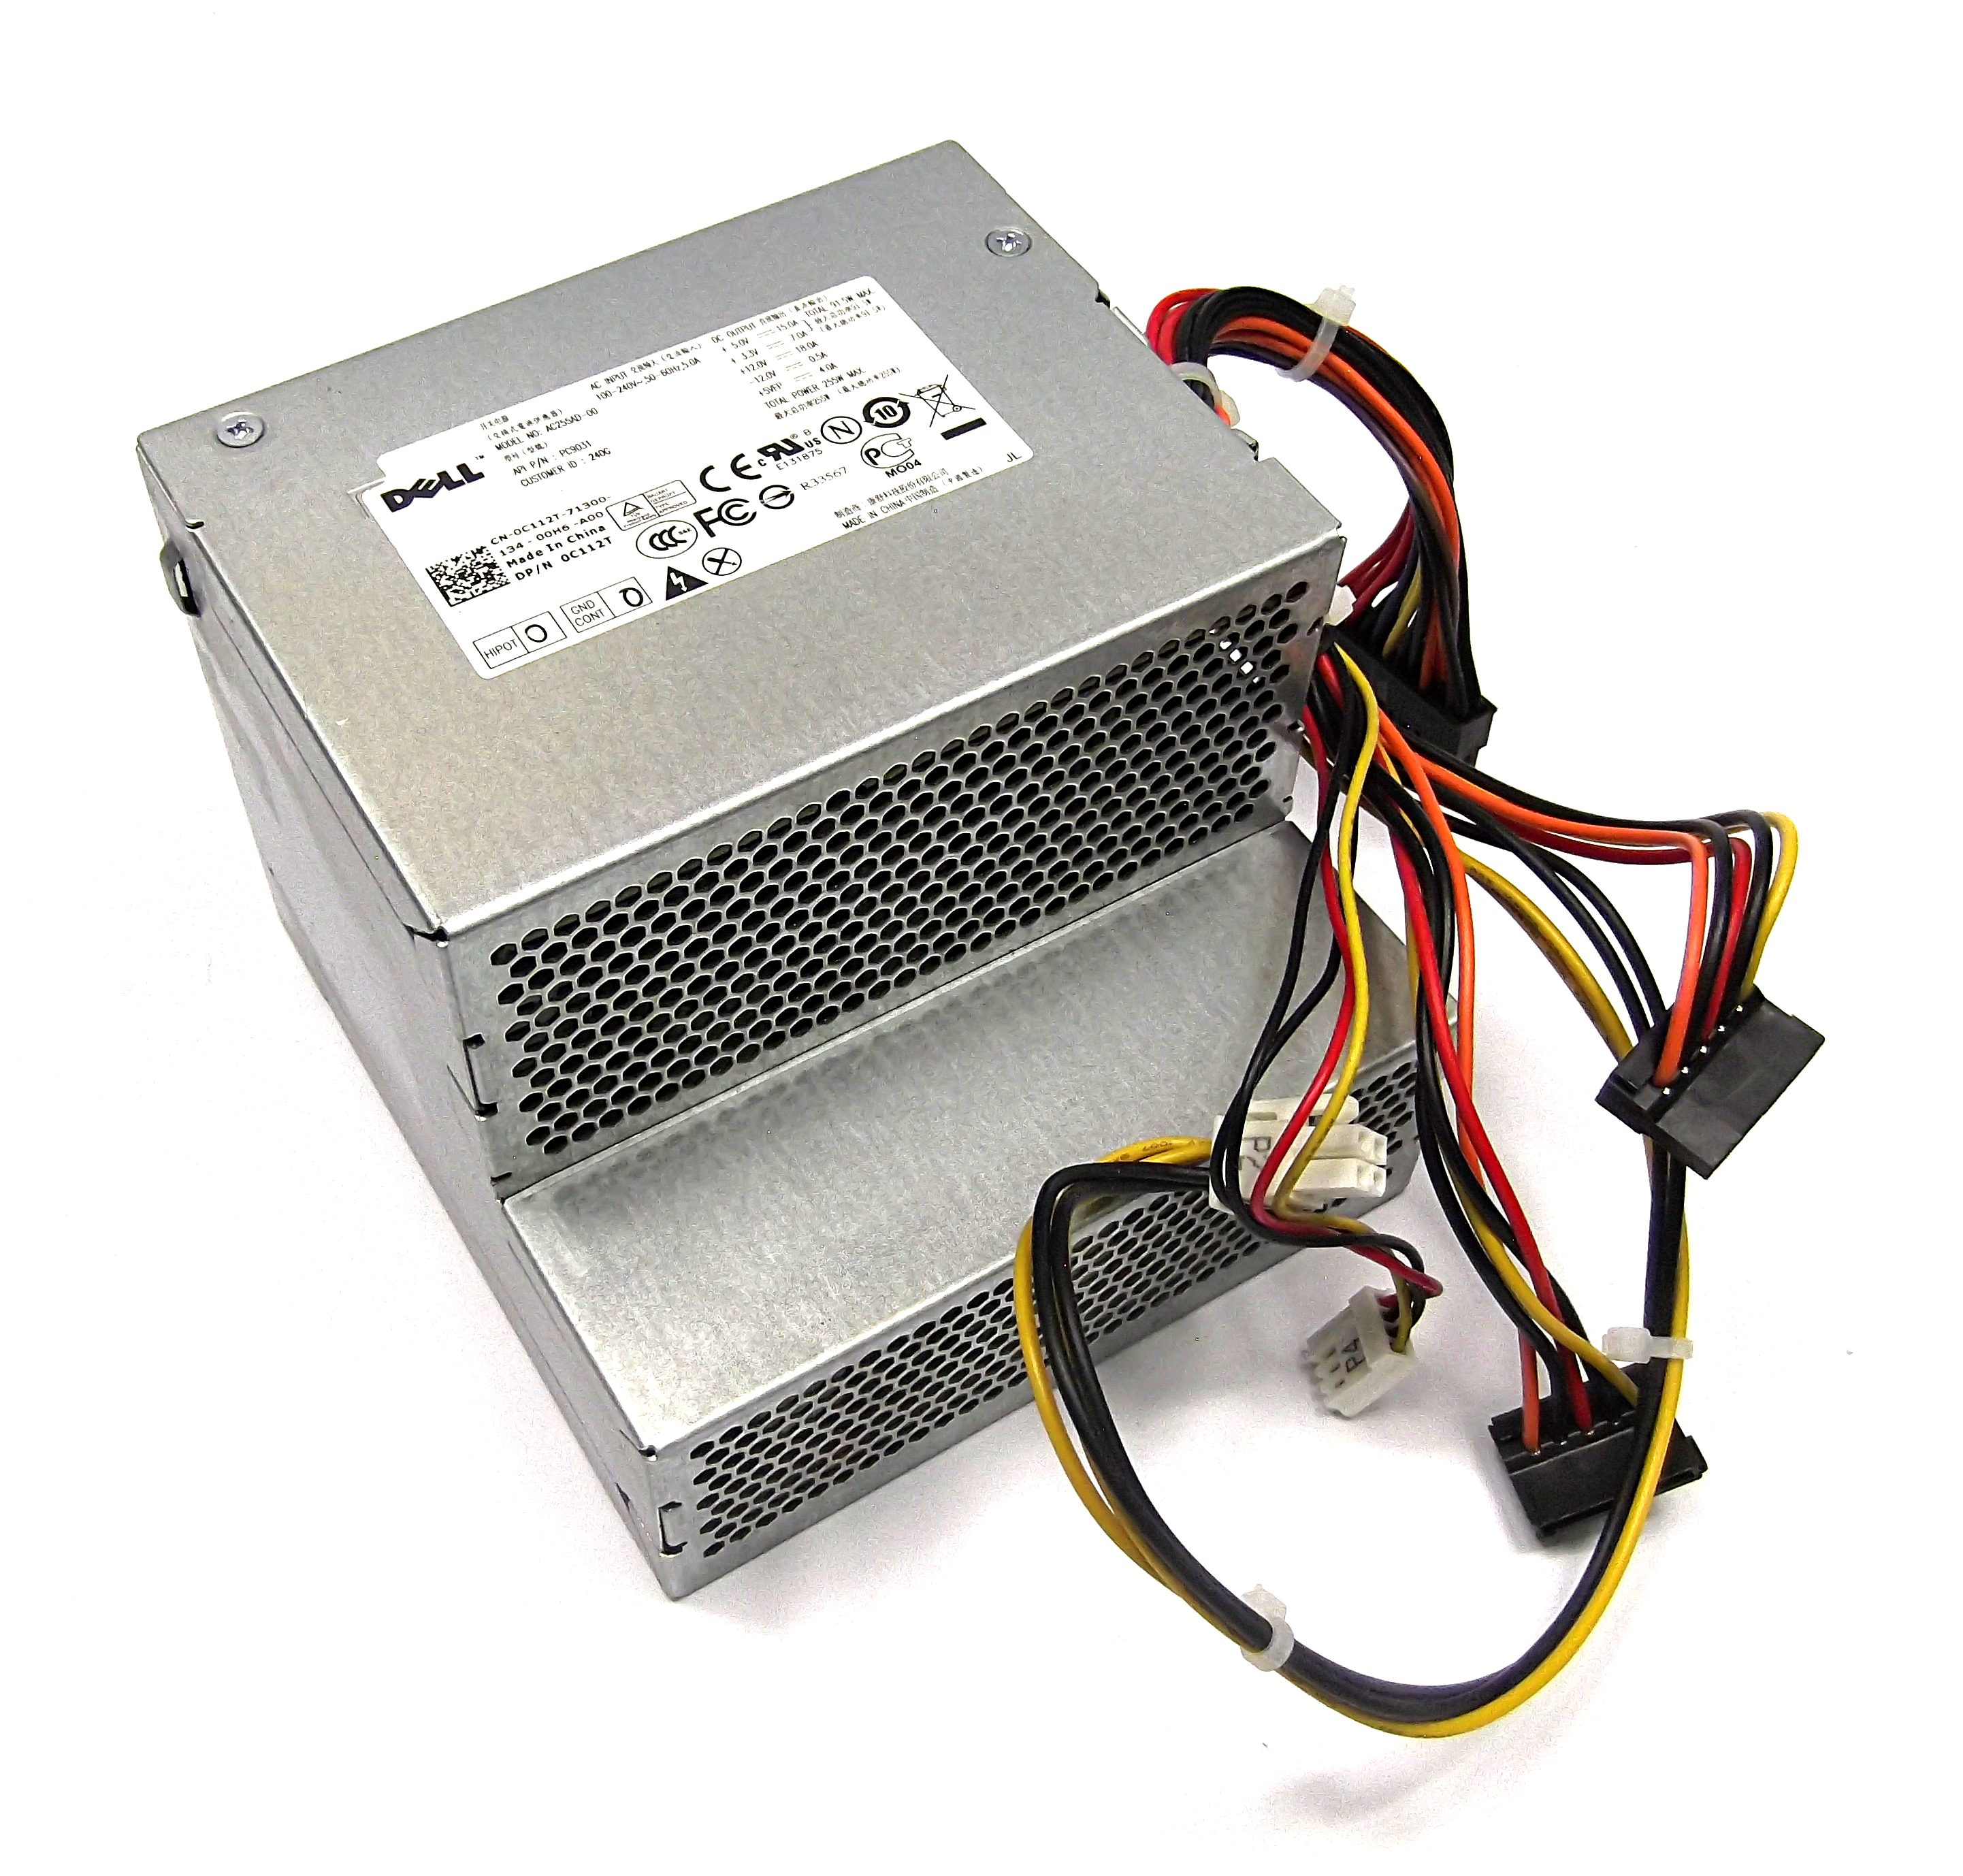 Dell C112T Optiplex 980 DT 255W Mini ATX  Power Supply